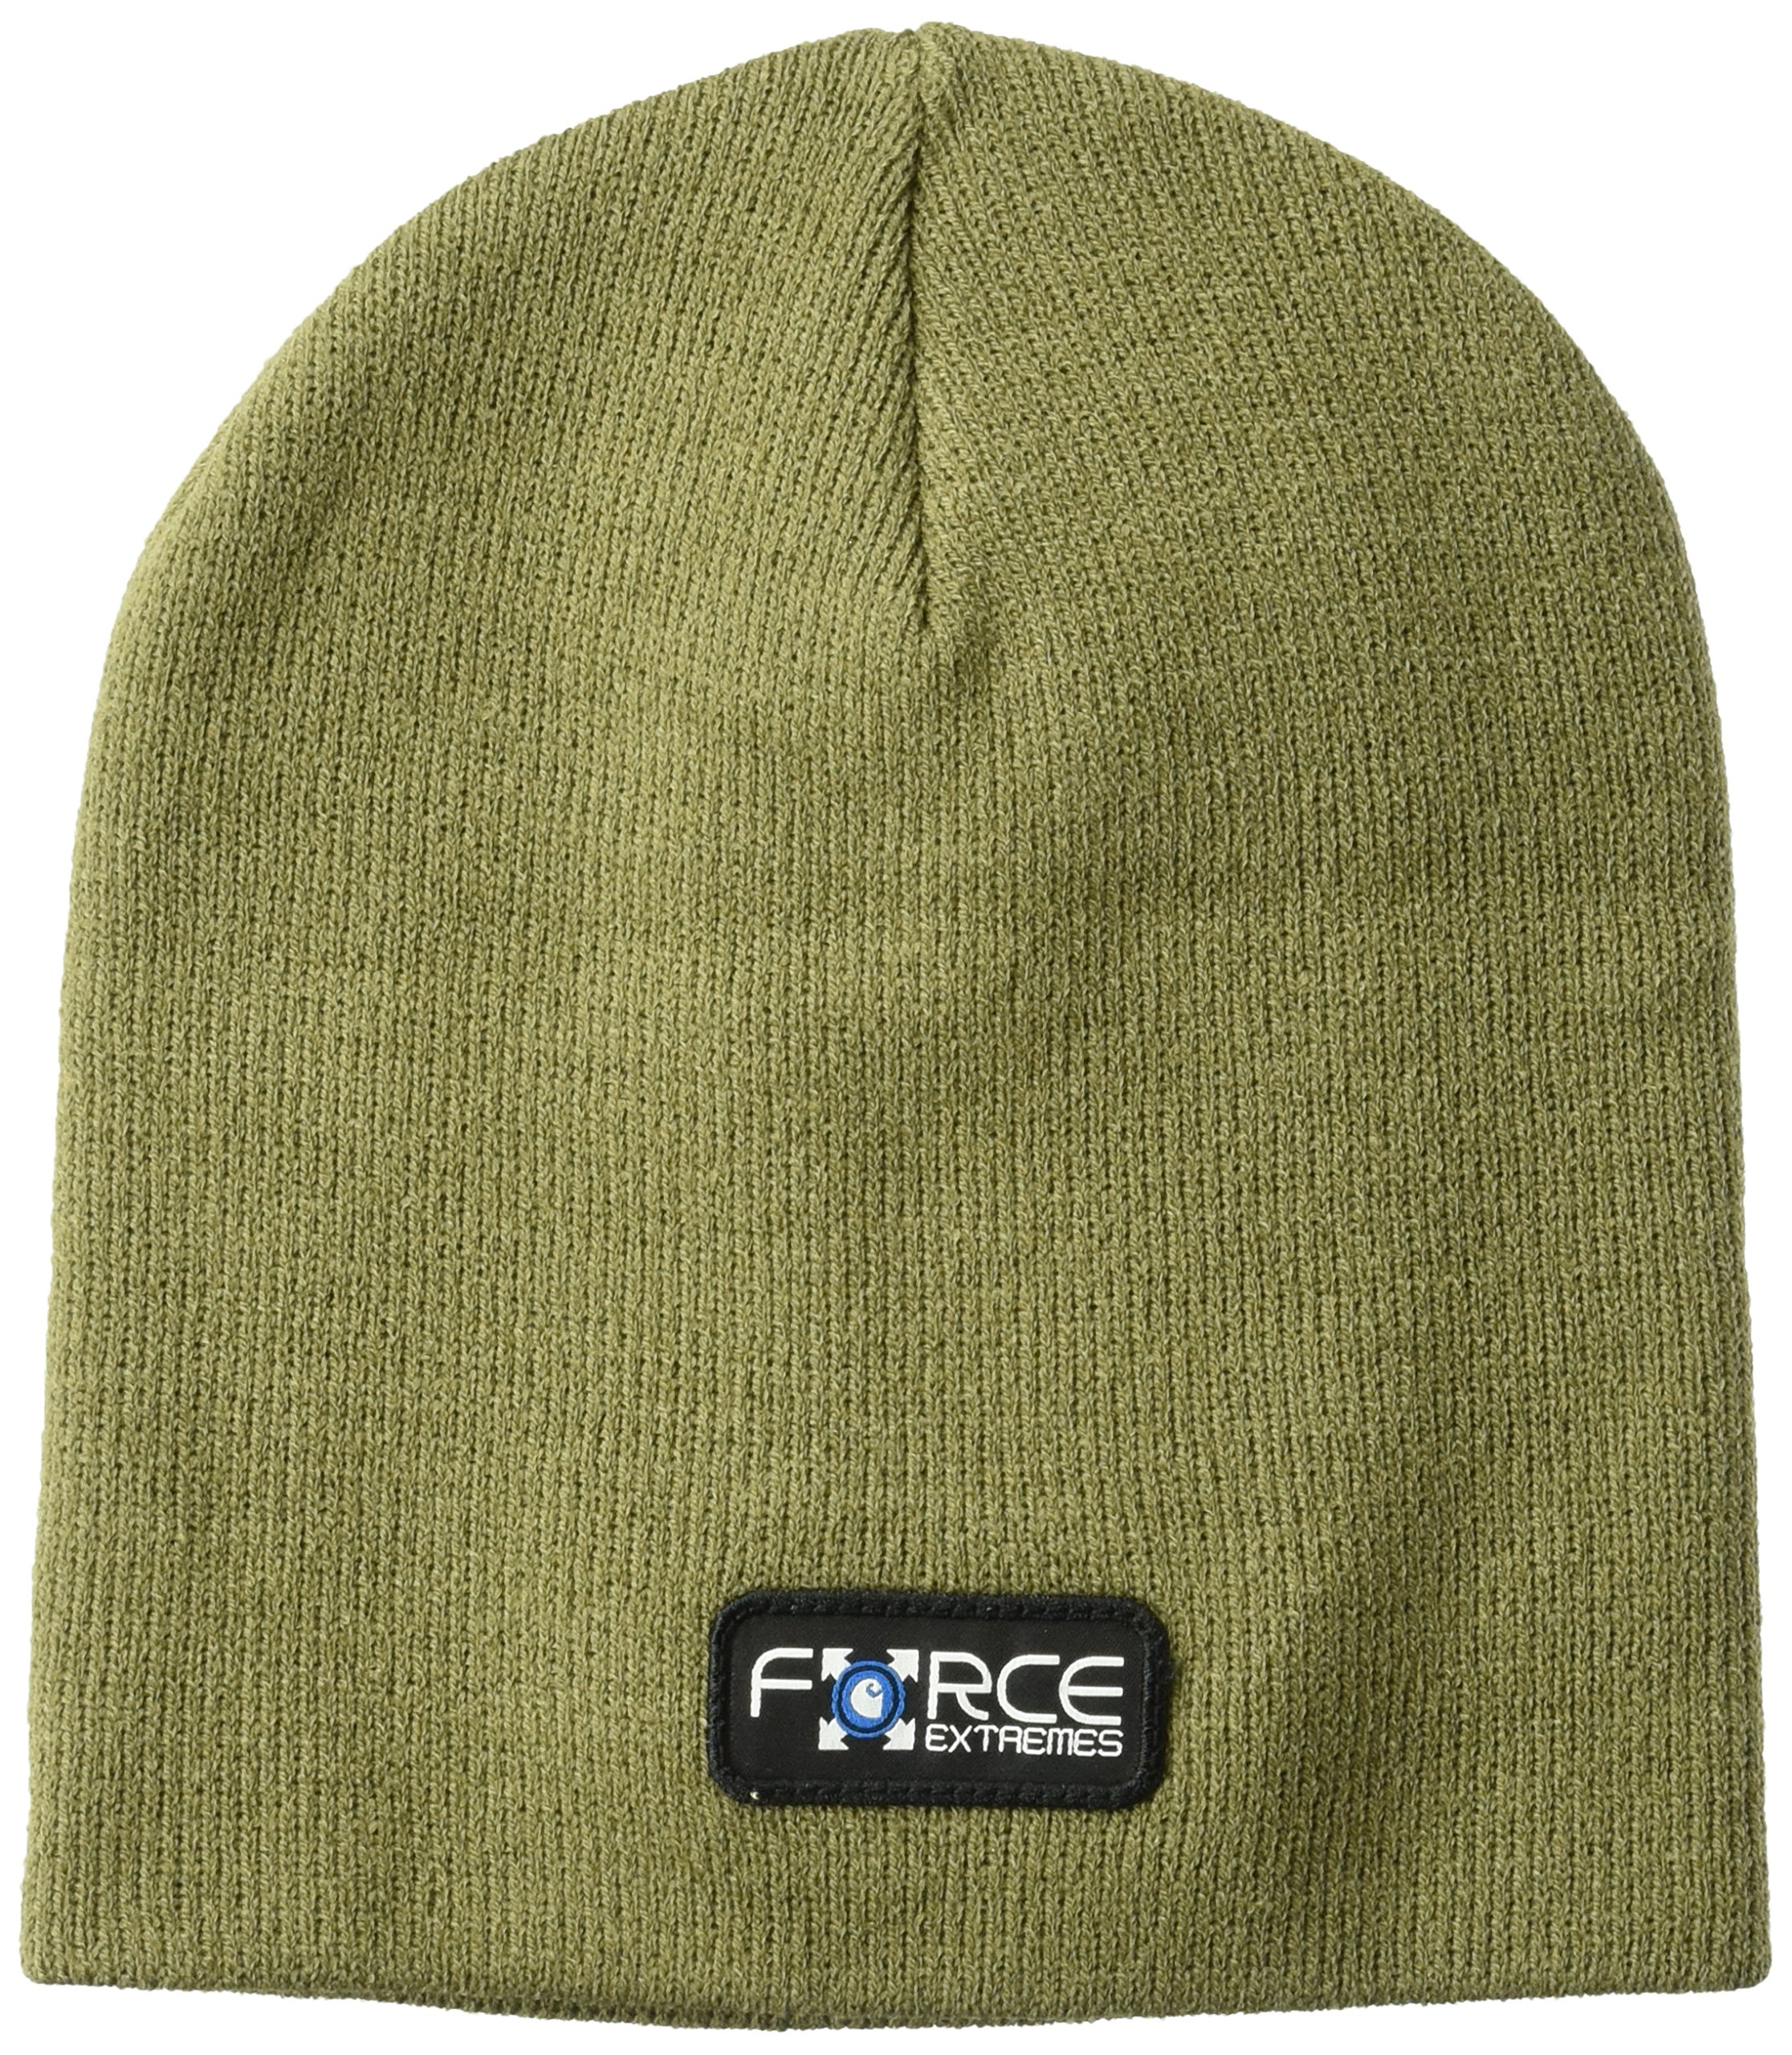 1d6296b2d Carhartt Men's Force Extremes Knit Hat